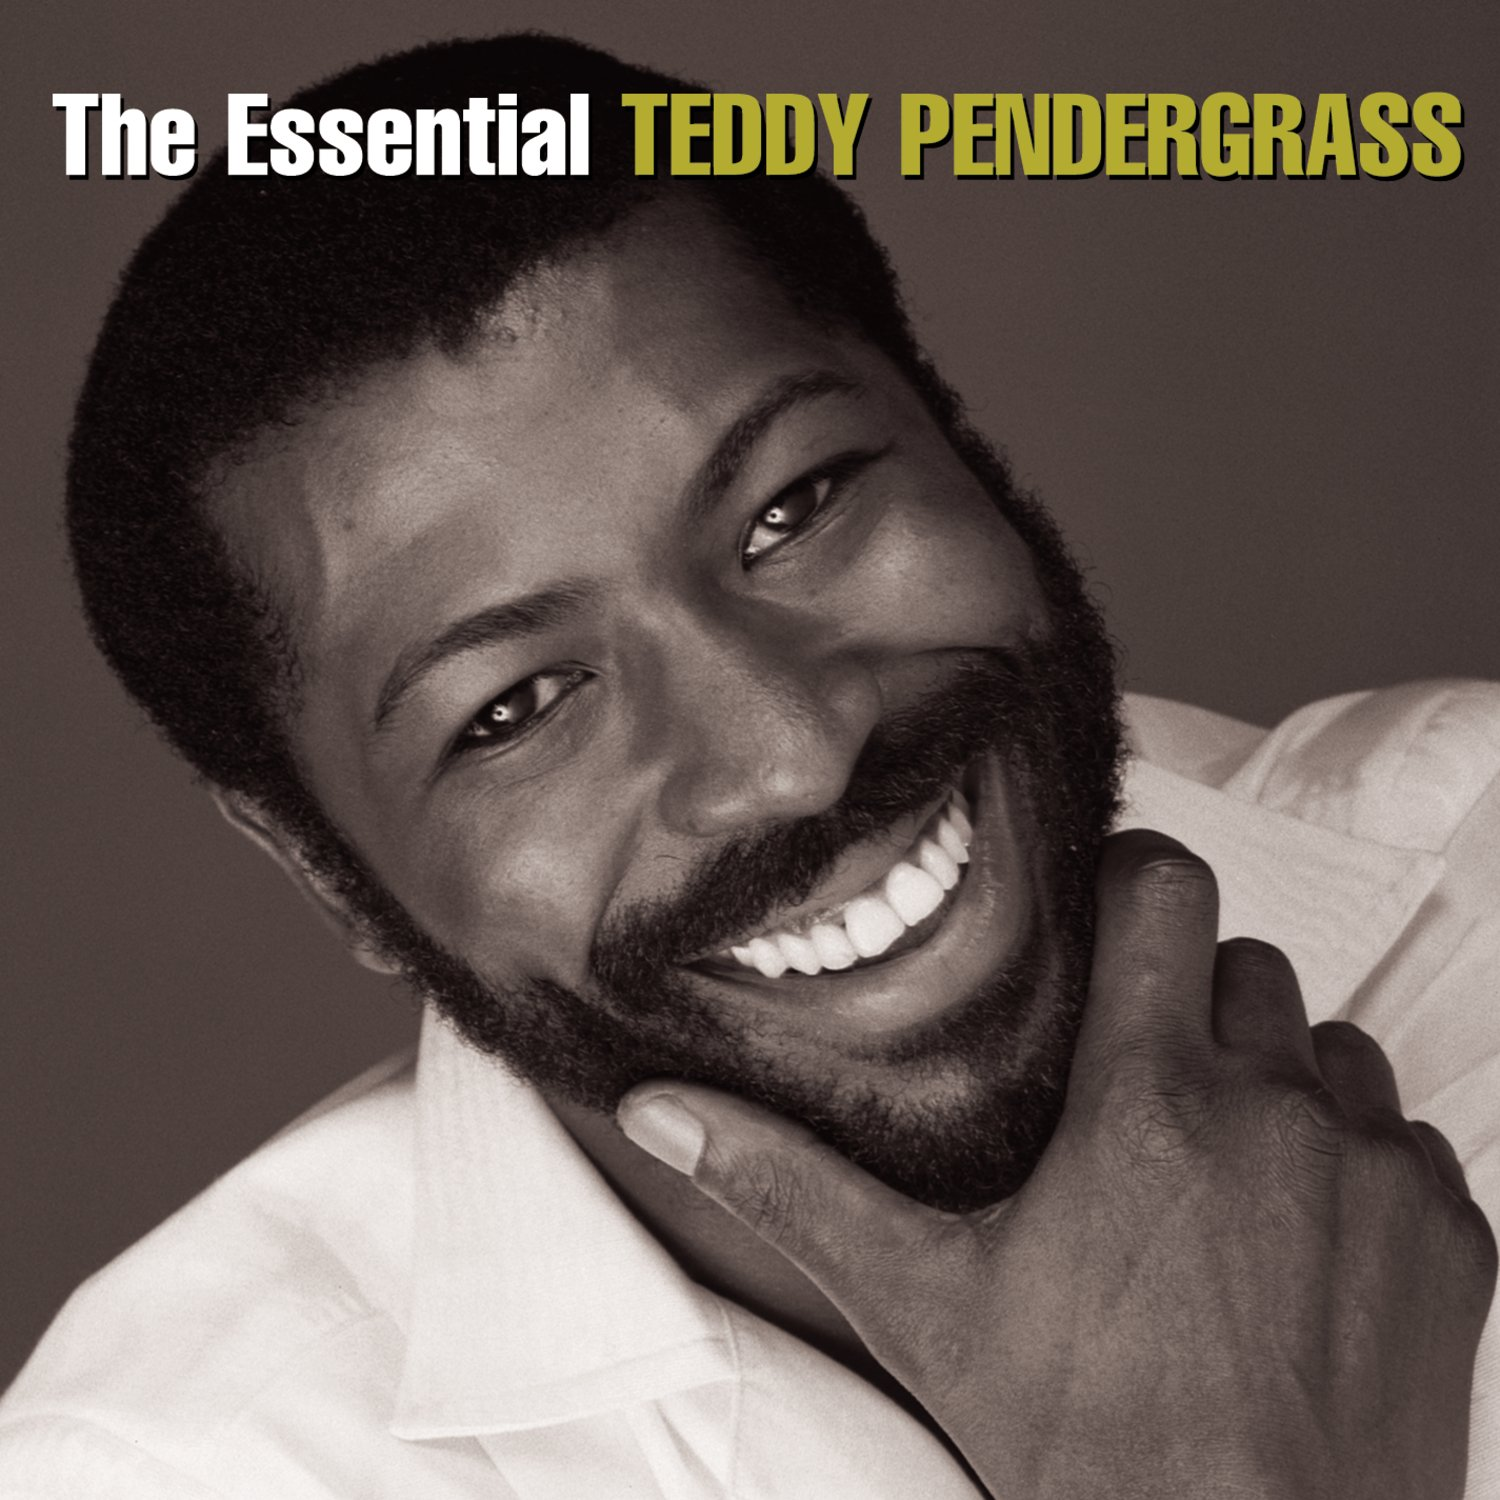 The Essential Teddy Pendergrass by Sony Legacy